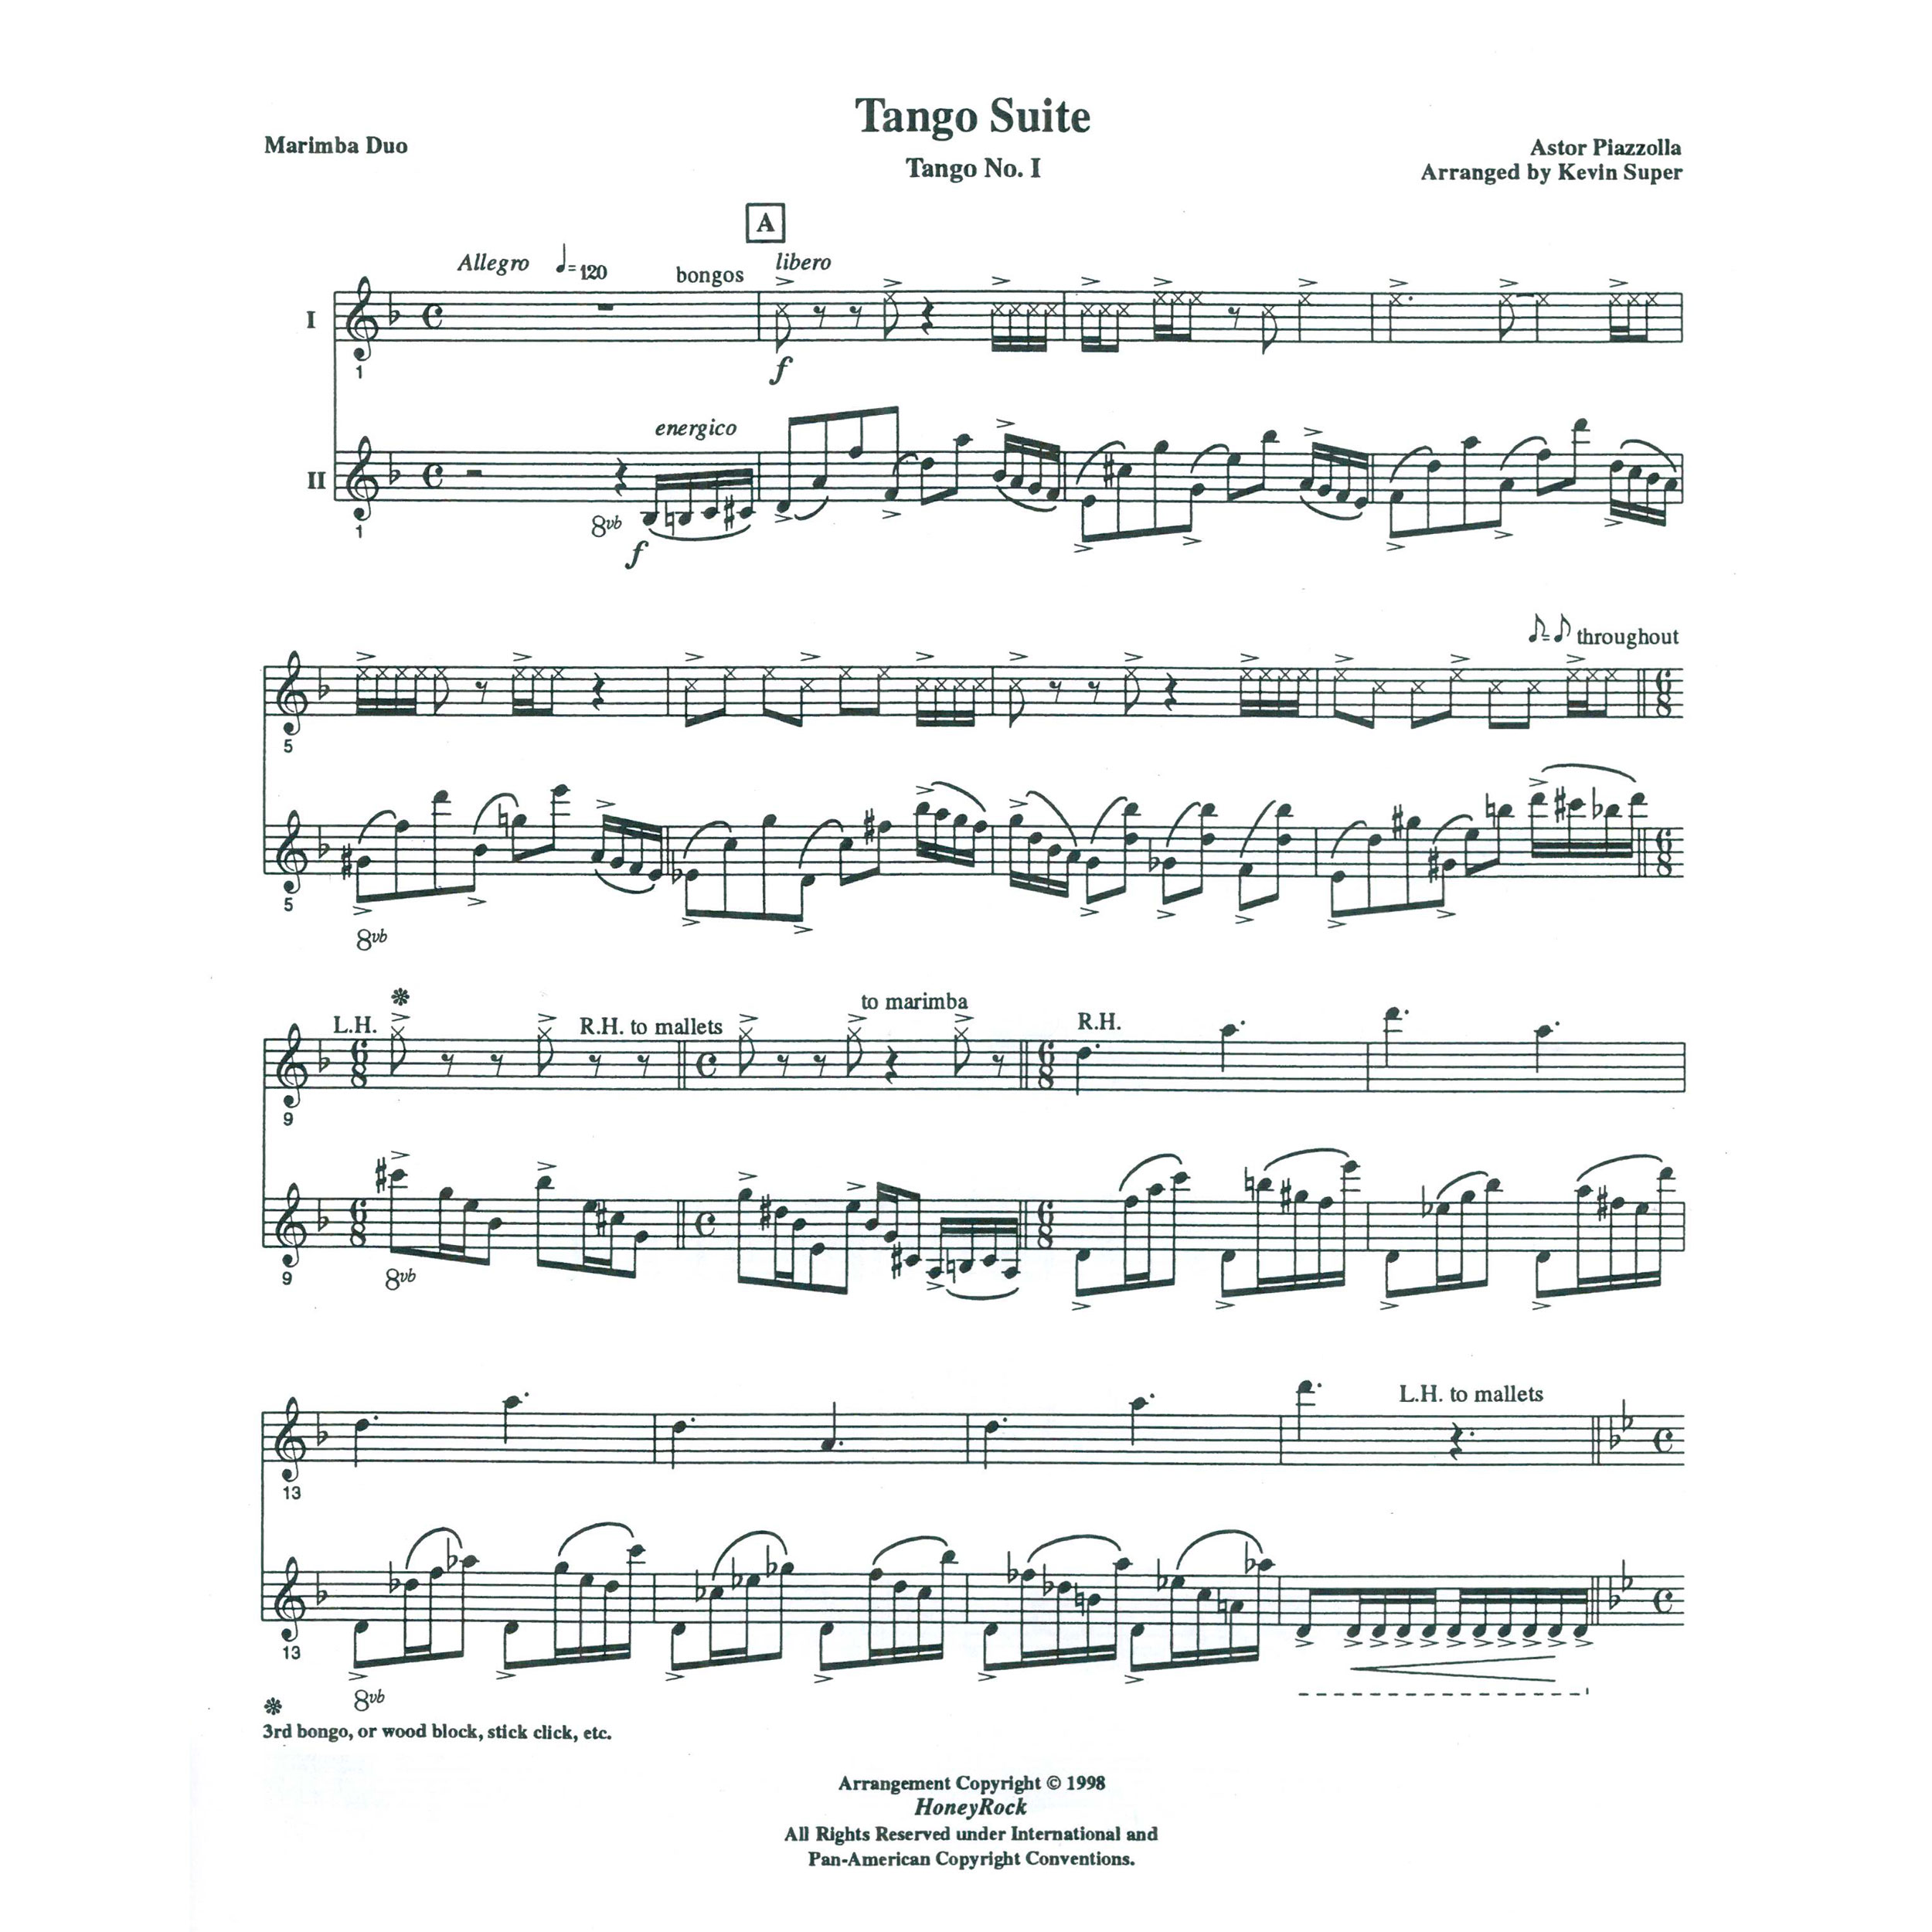 Tango Suite Mvt  I by Astor Piazzolla arr  Kevin Super